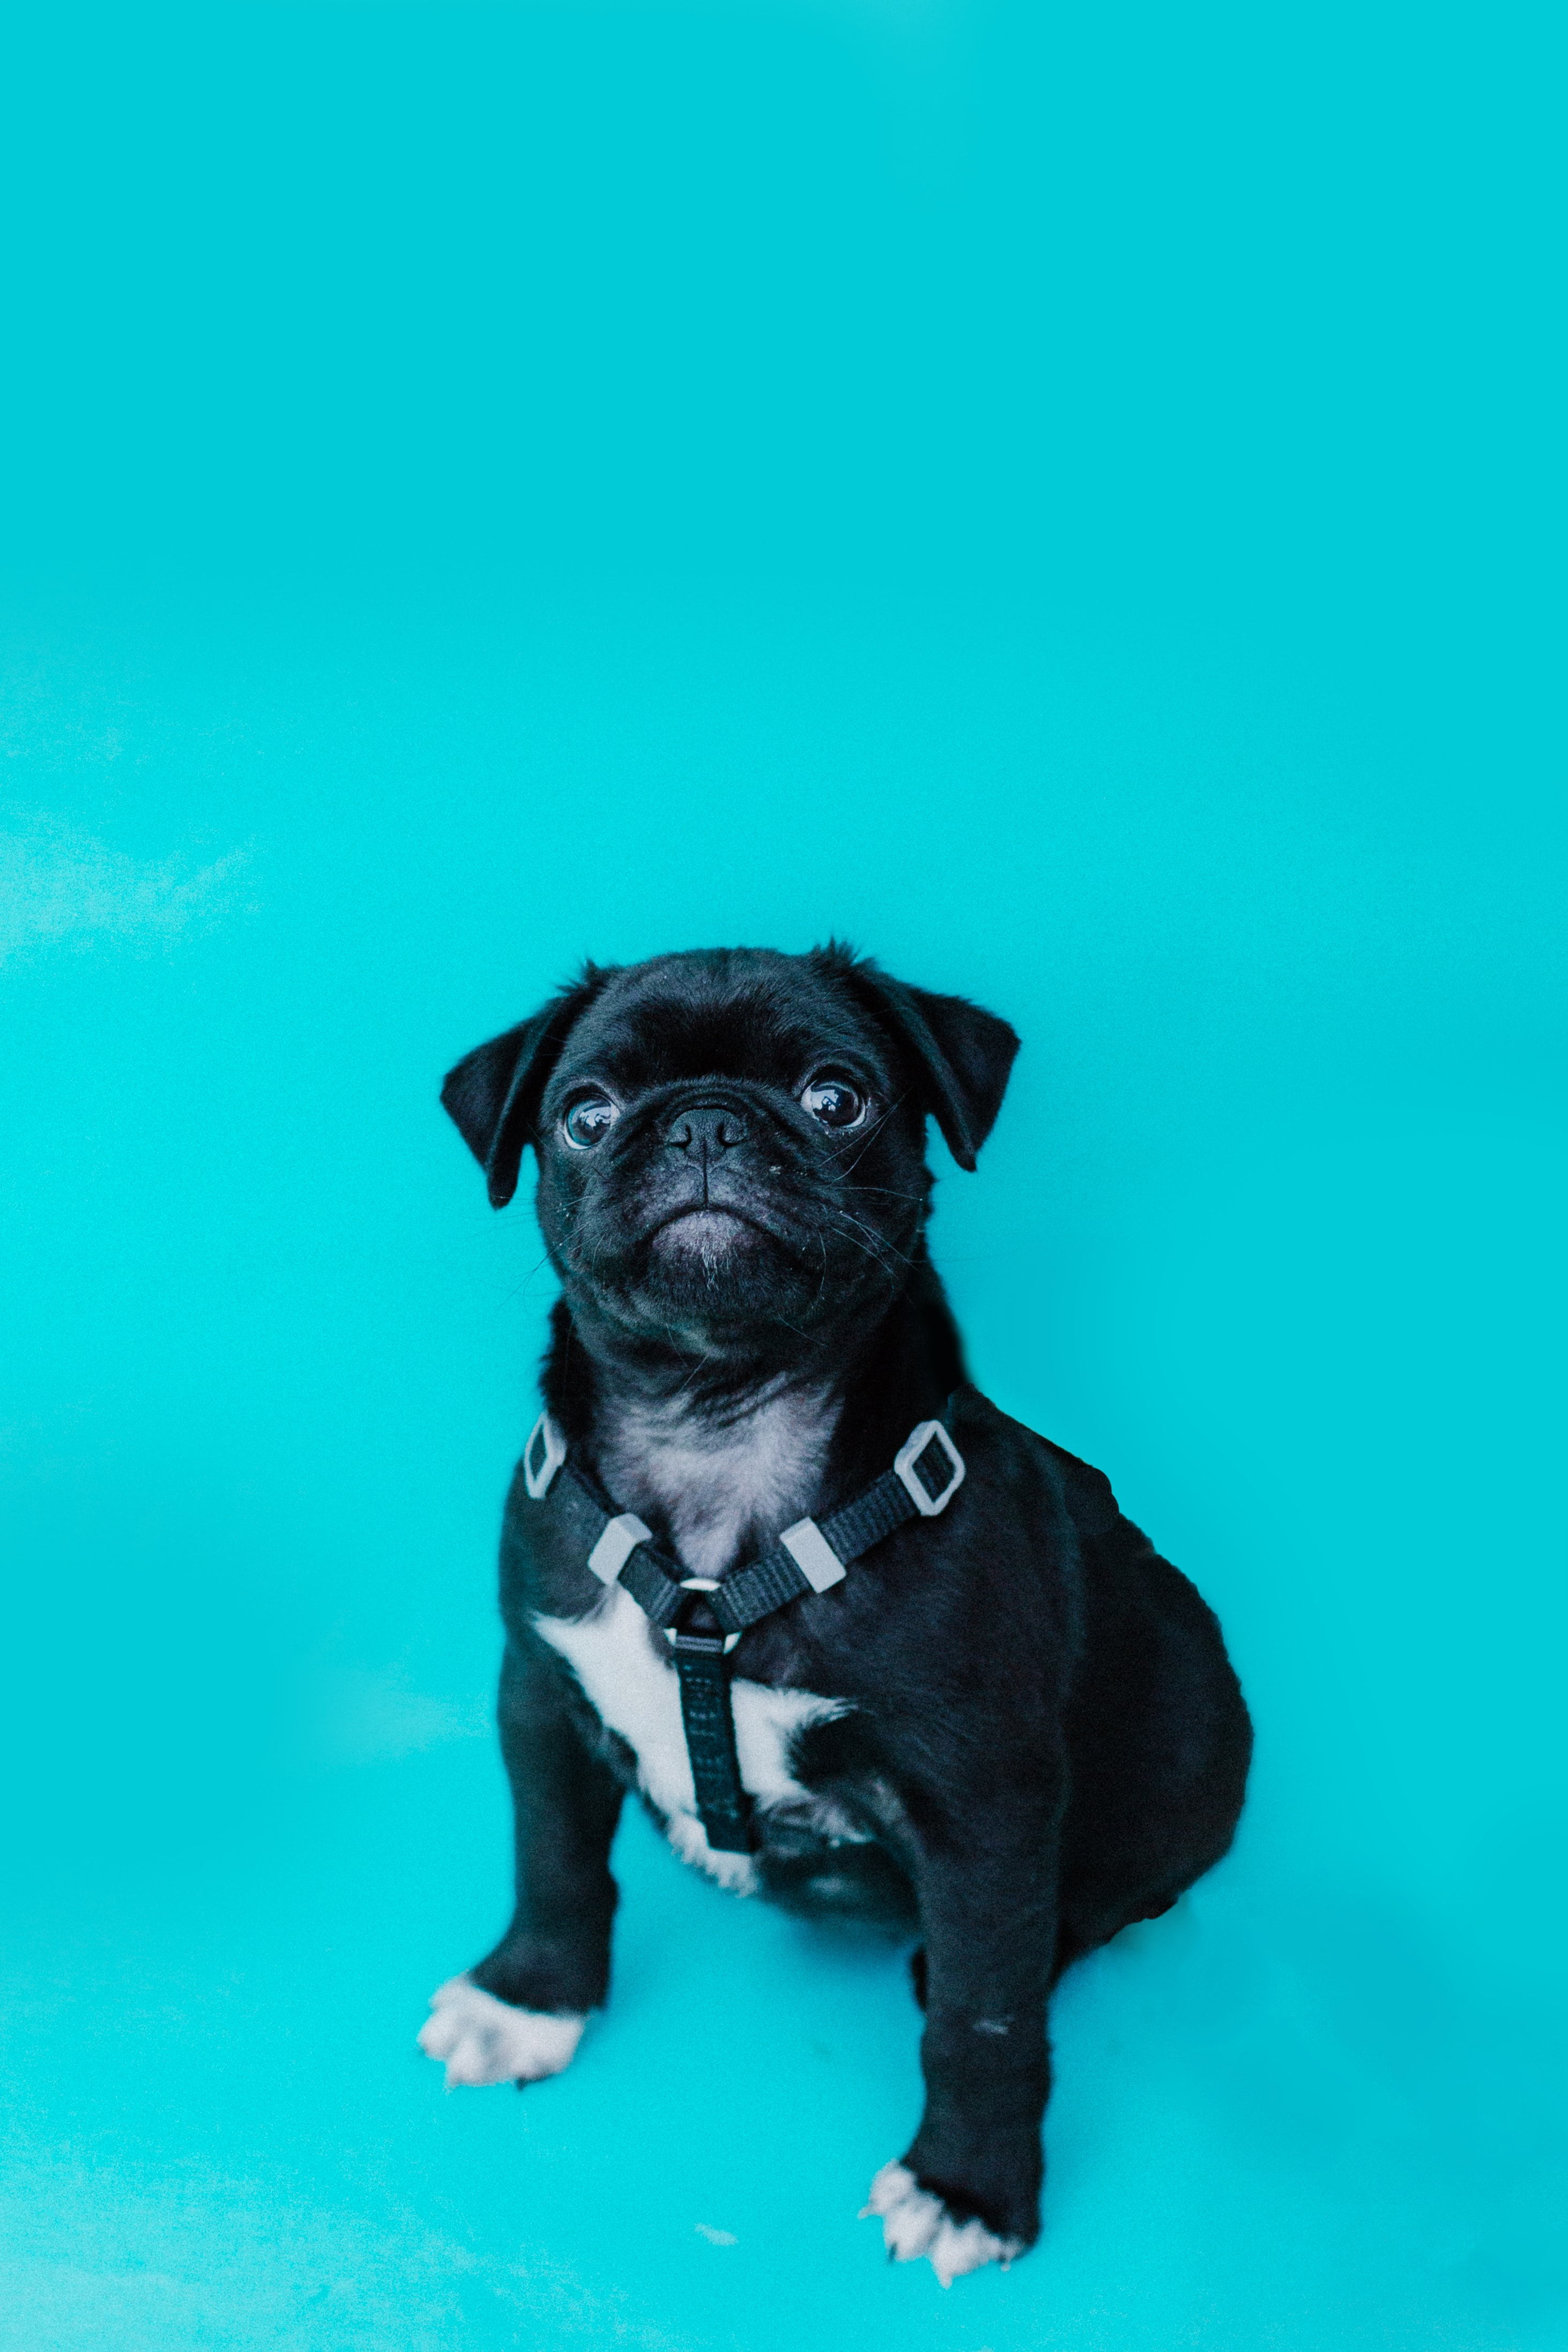 102882 download wallpaper Animals, Pug, Dog, Sight, Opinion, Funny screensavers and pictures for free